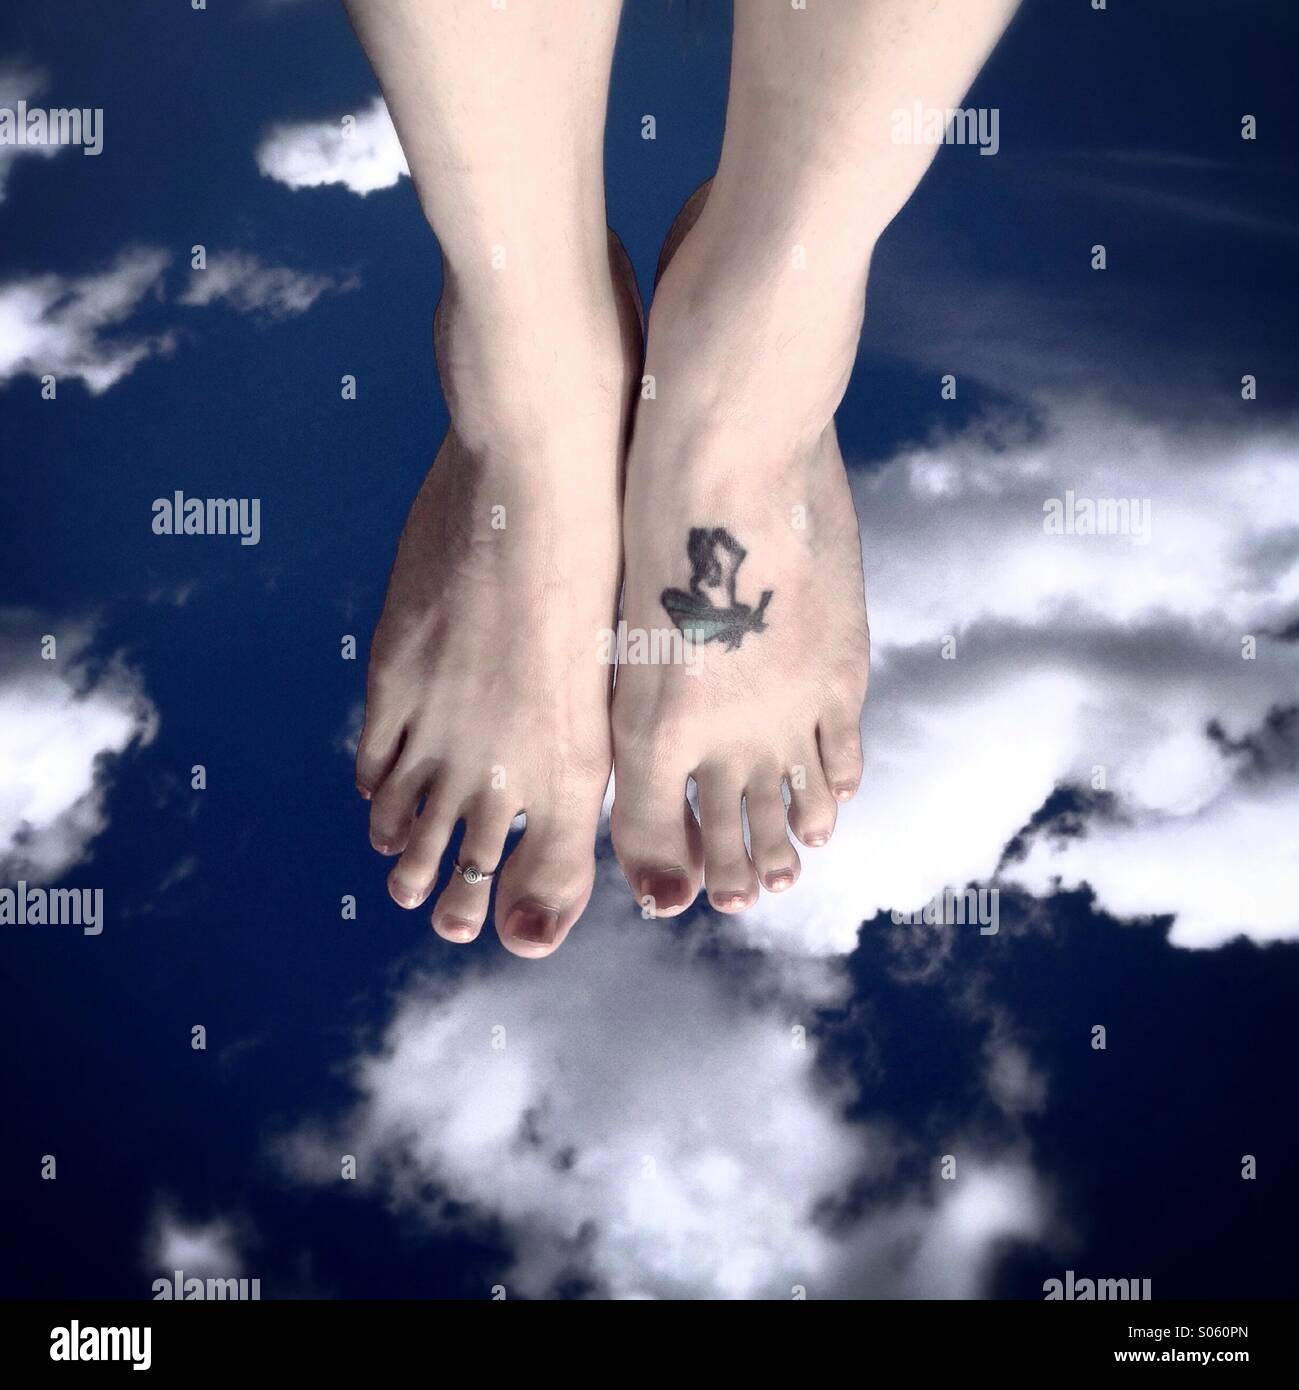 Walking on clouds - Stock Image